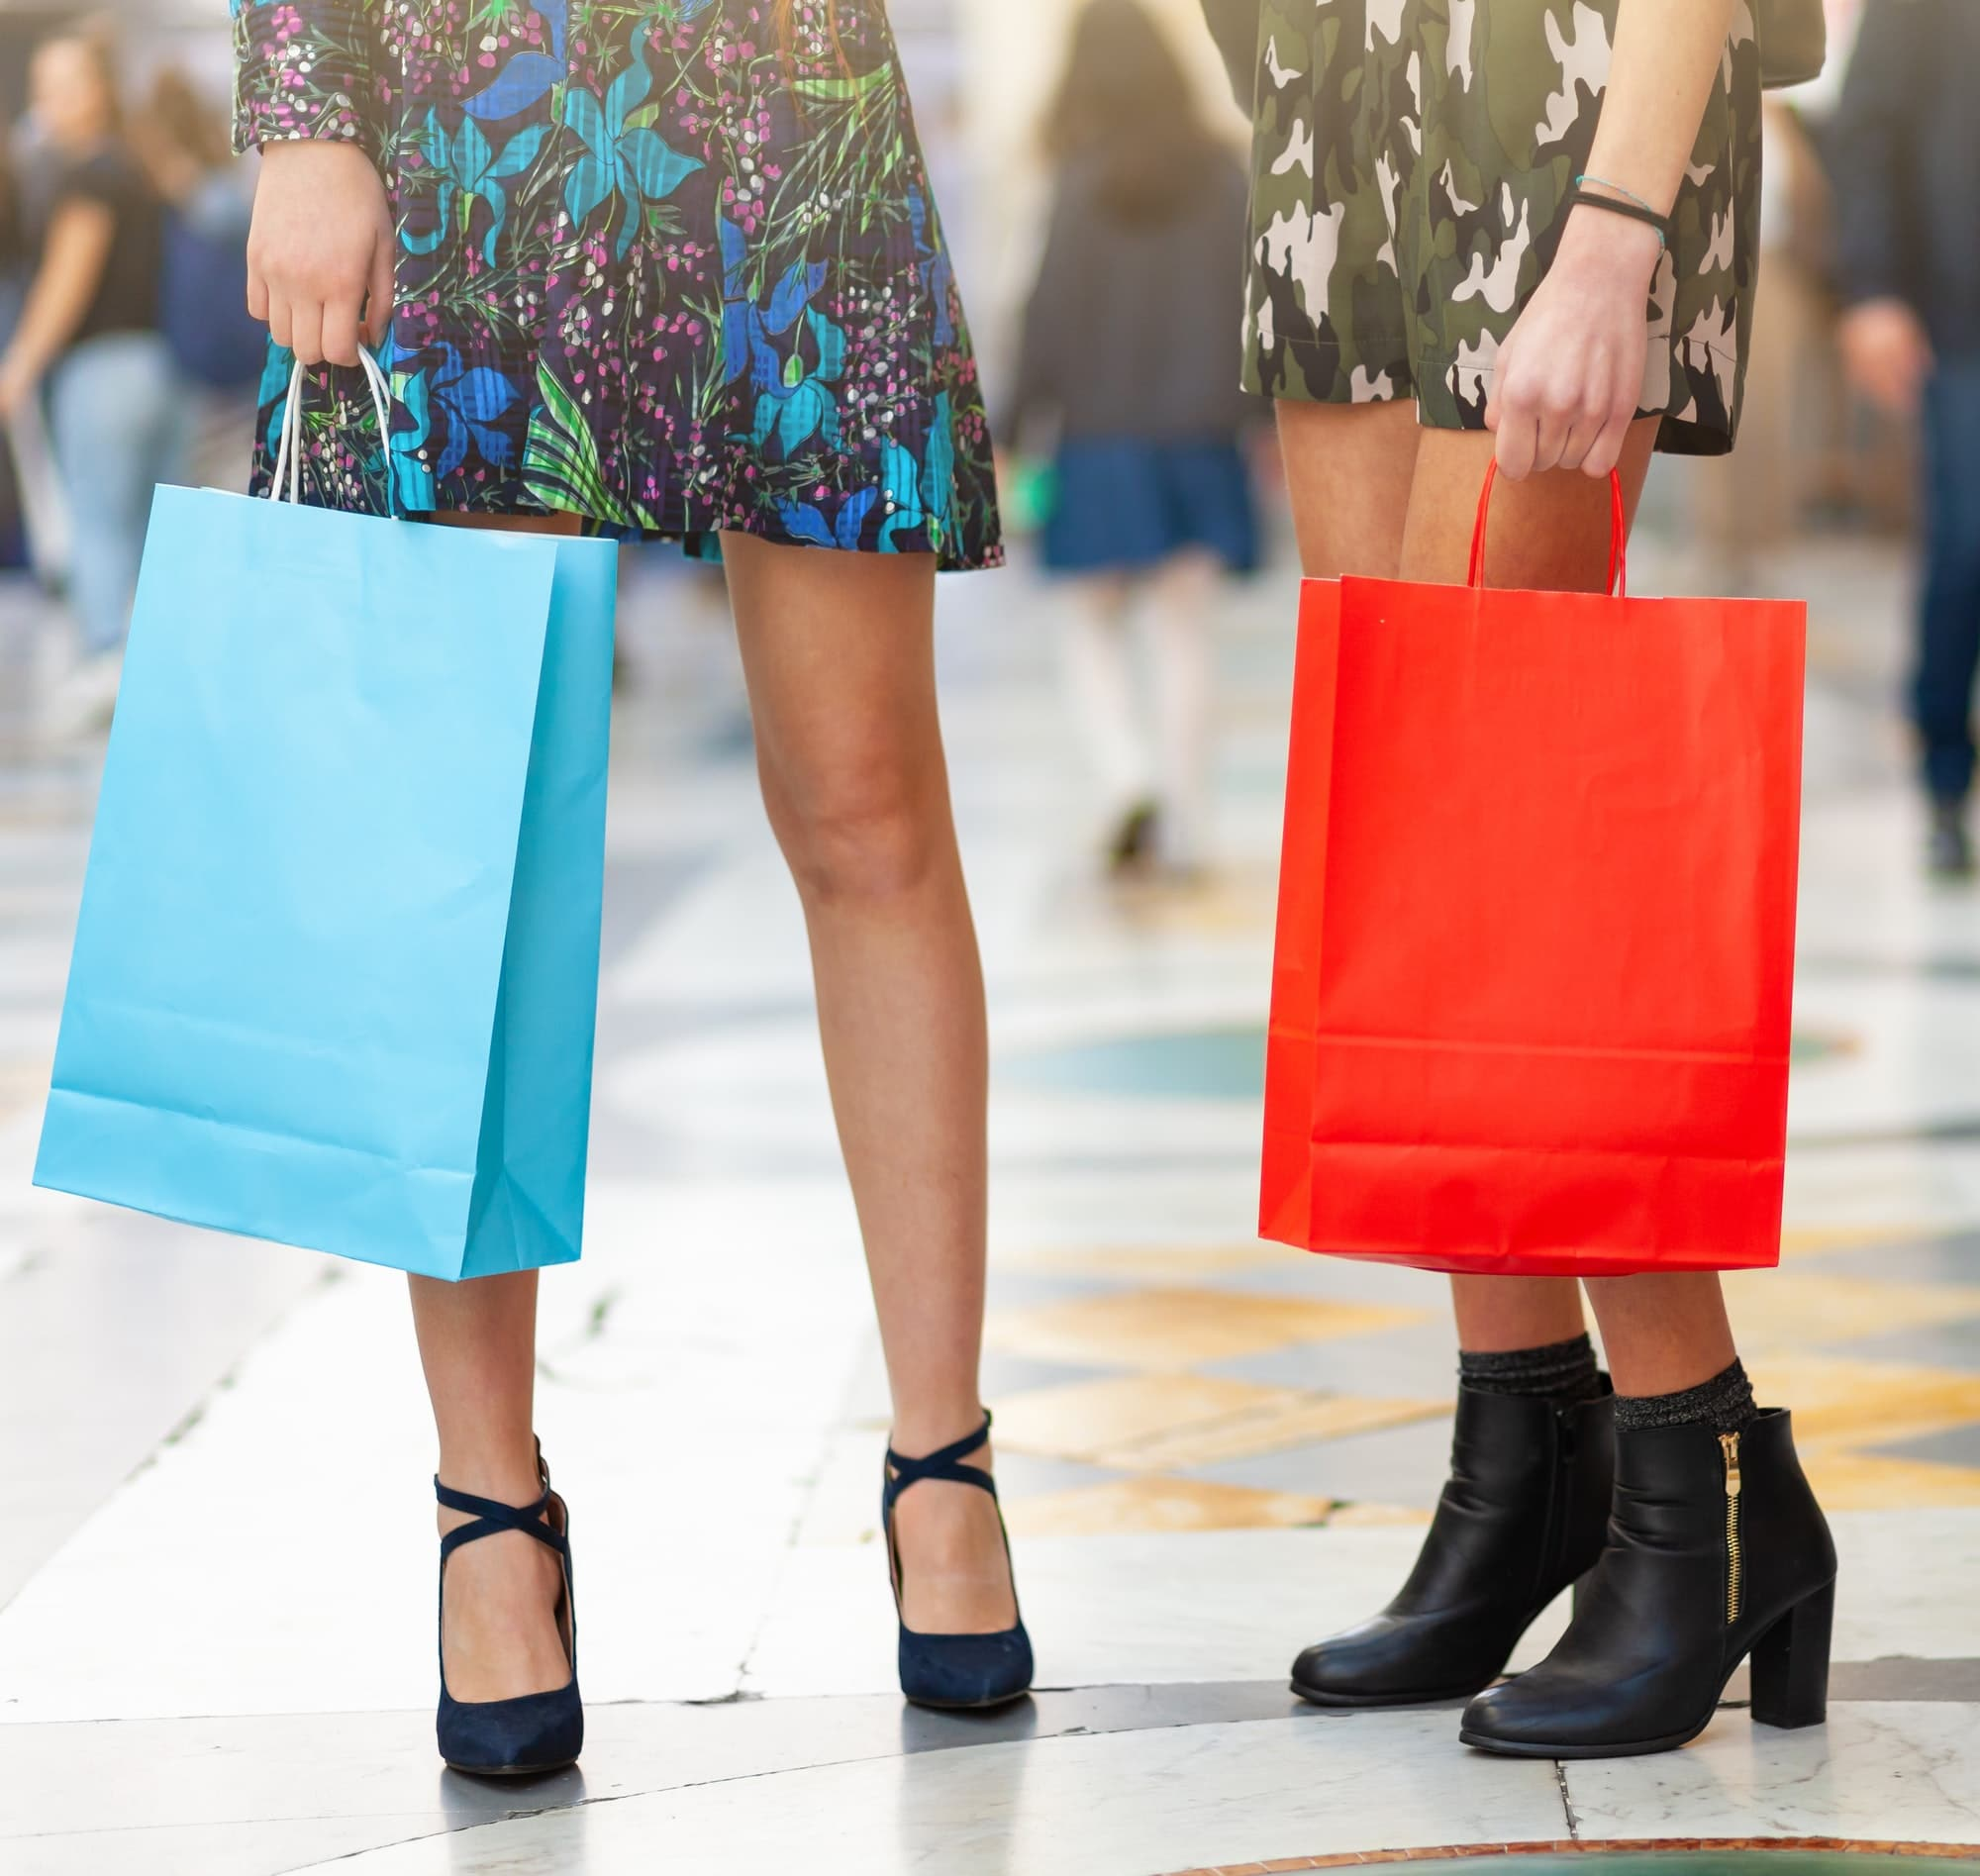 Closeup of legs and shopping bags.